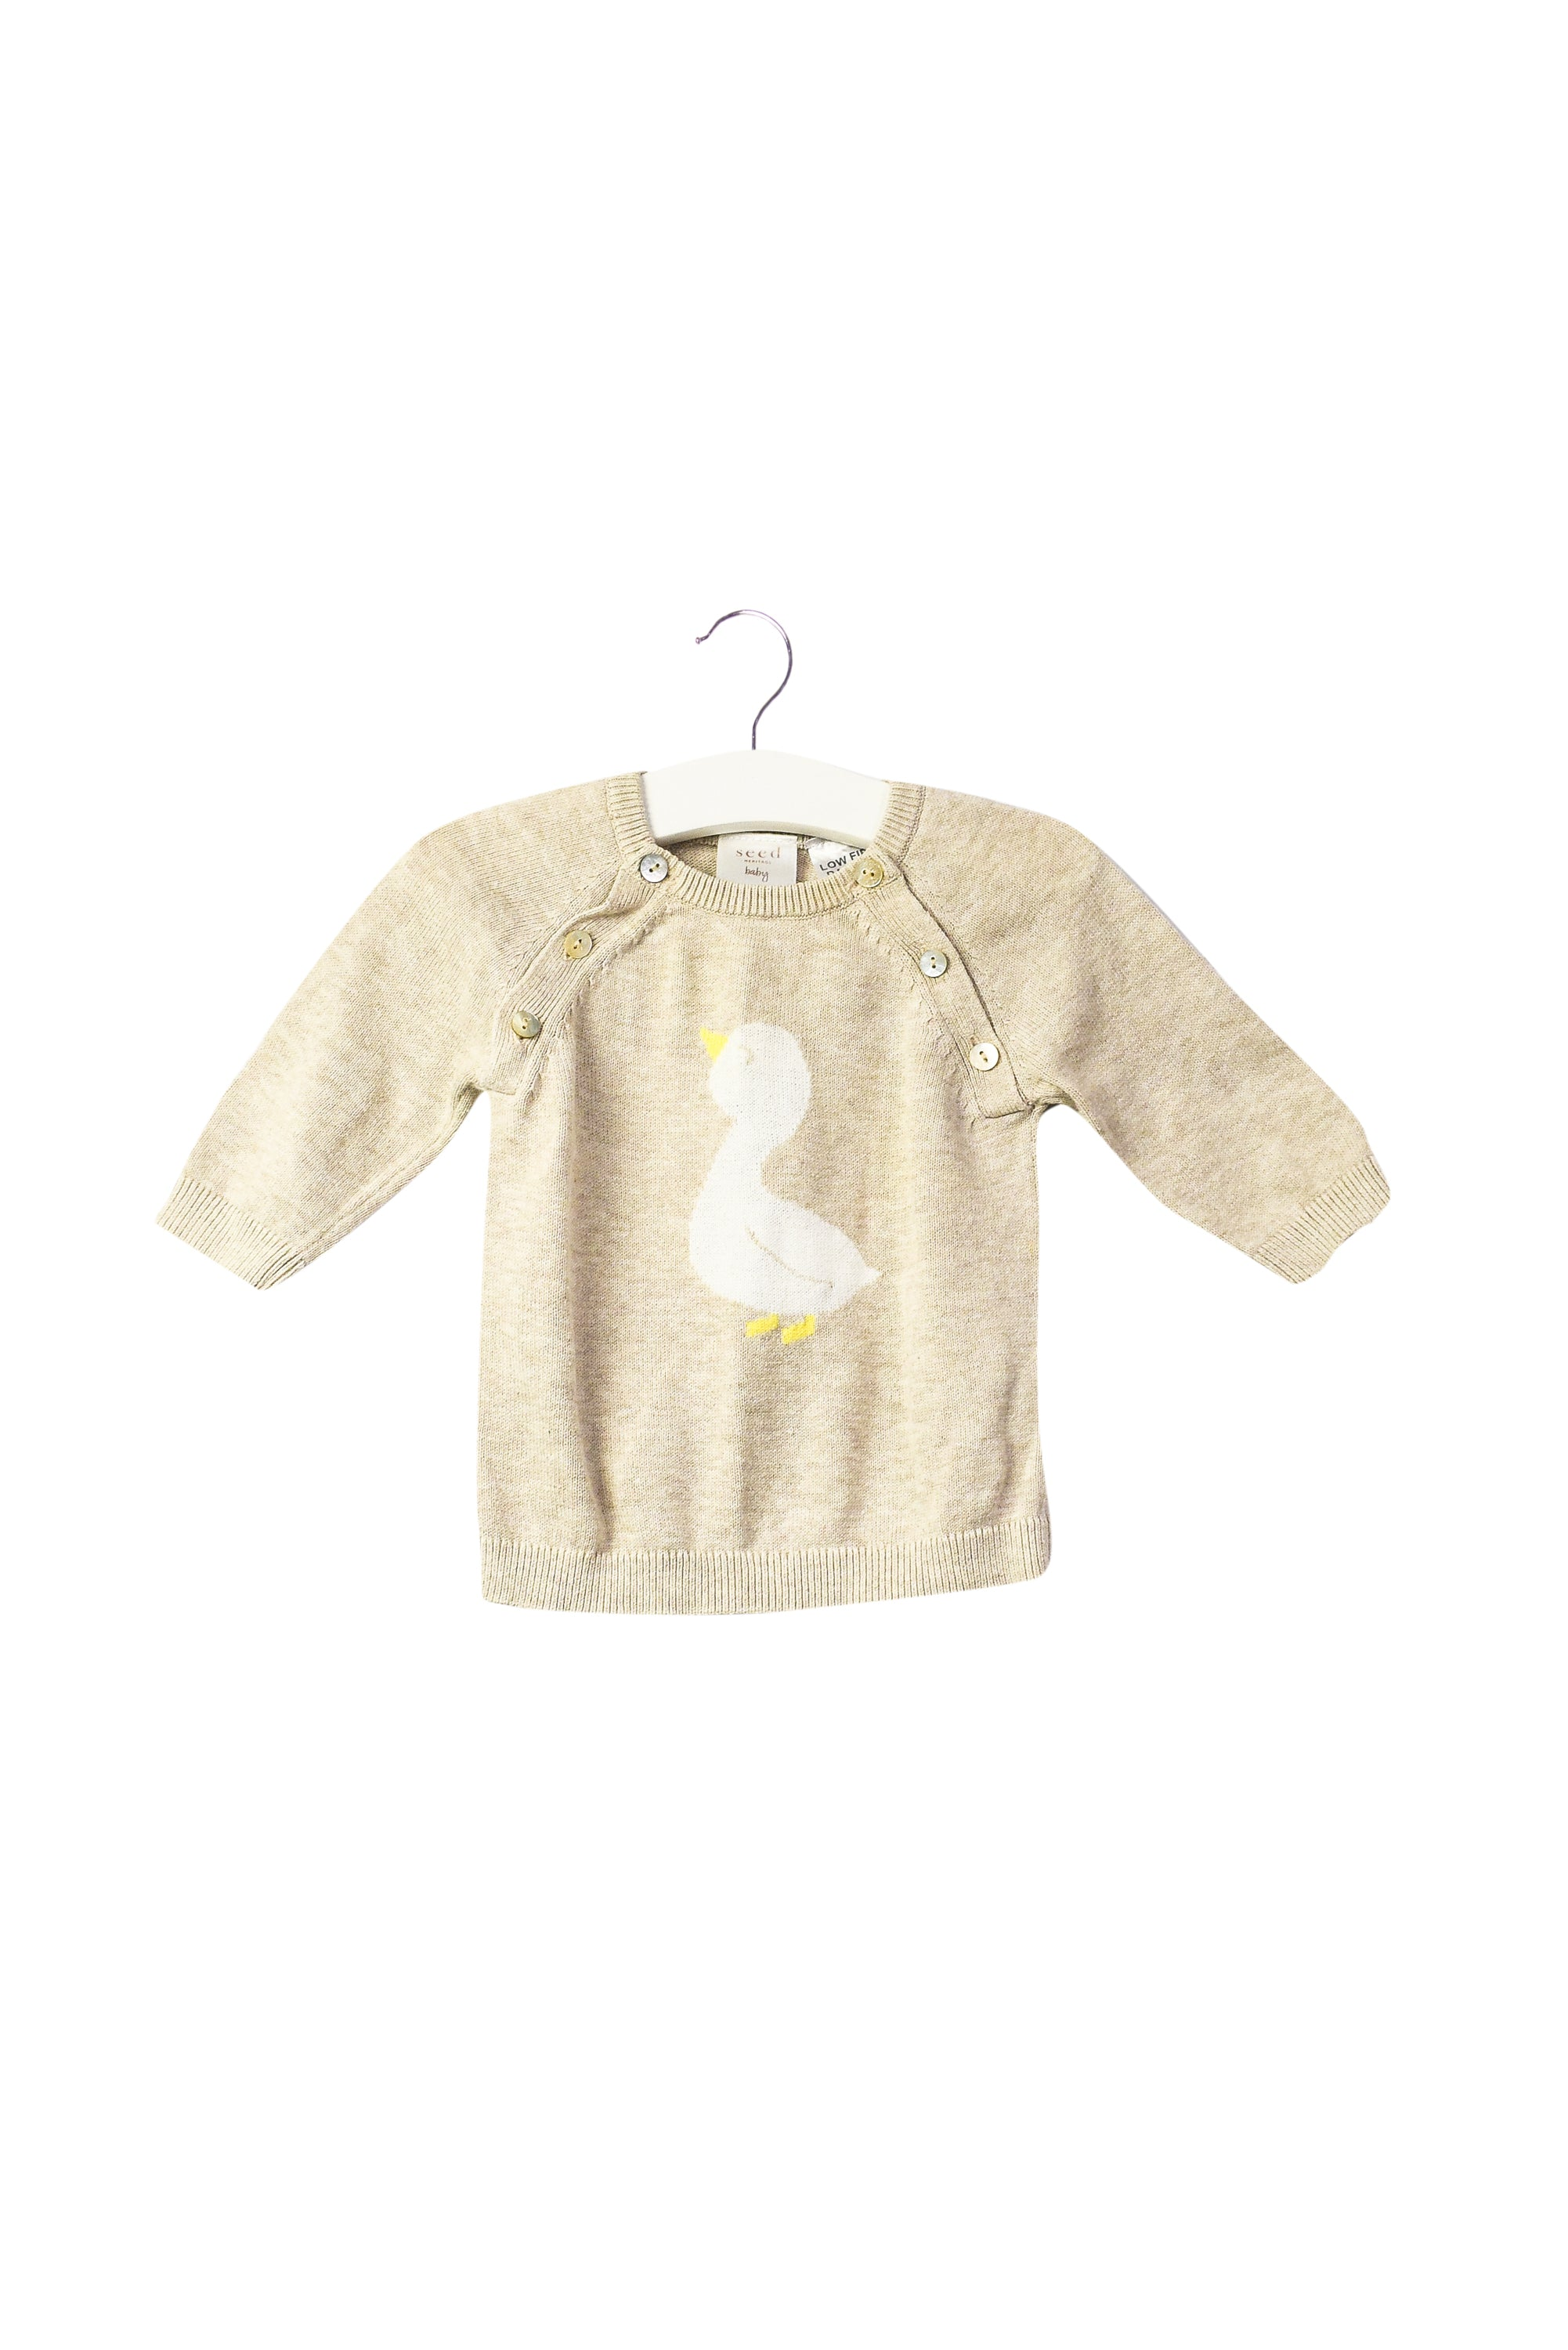 10043933 Seed Baby~Knit Sweater 0-3M at Retykle